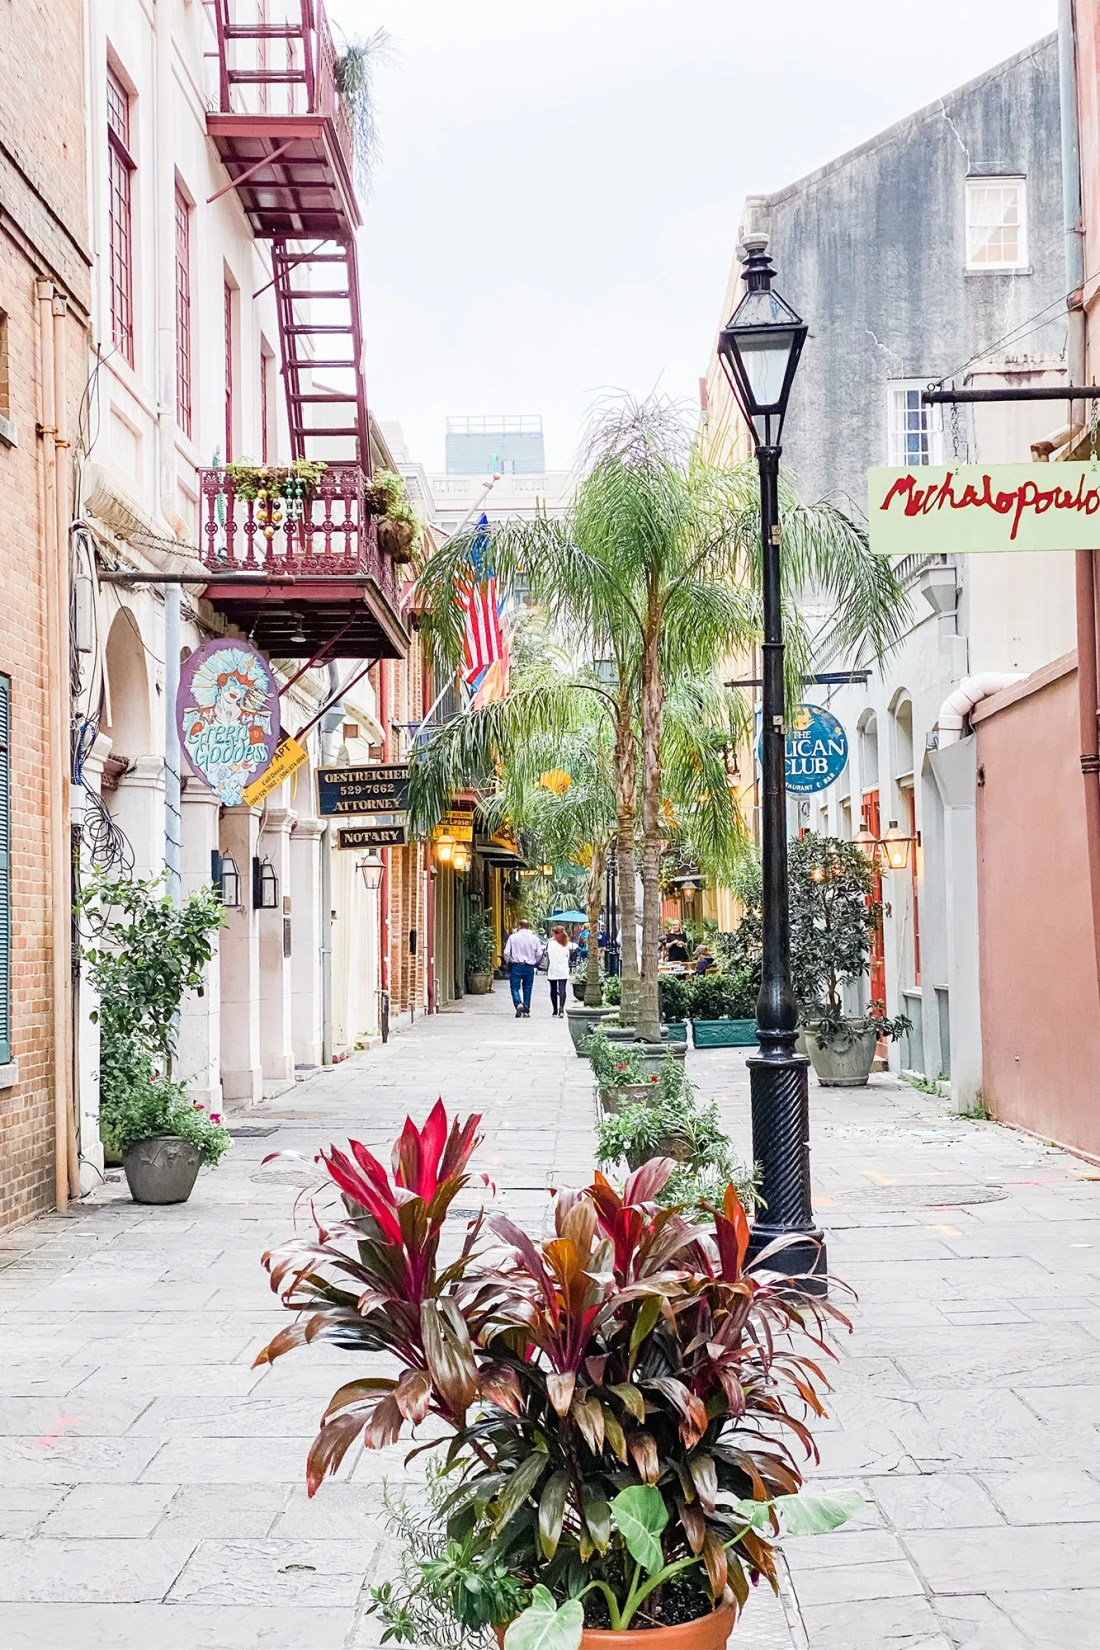 Colorful homes surrounding courtyard